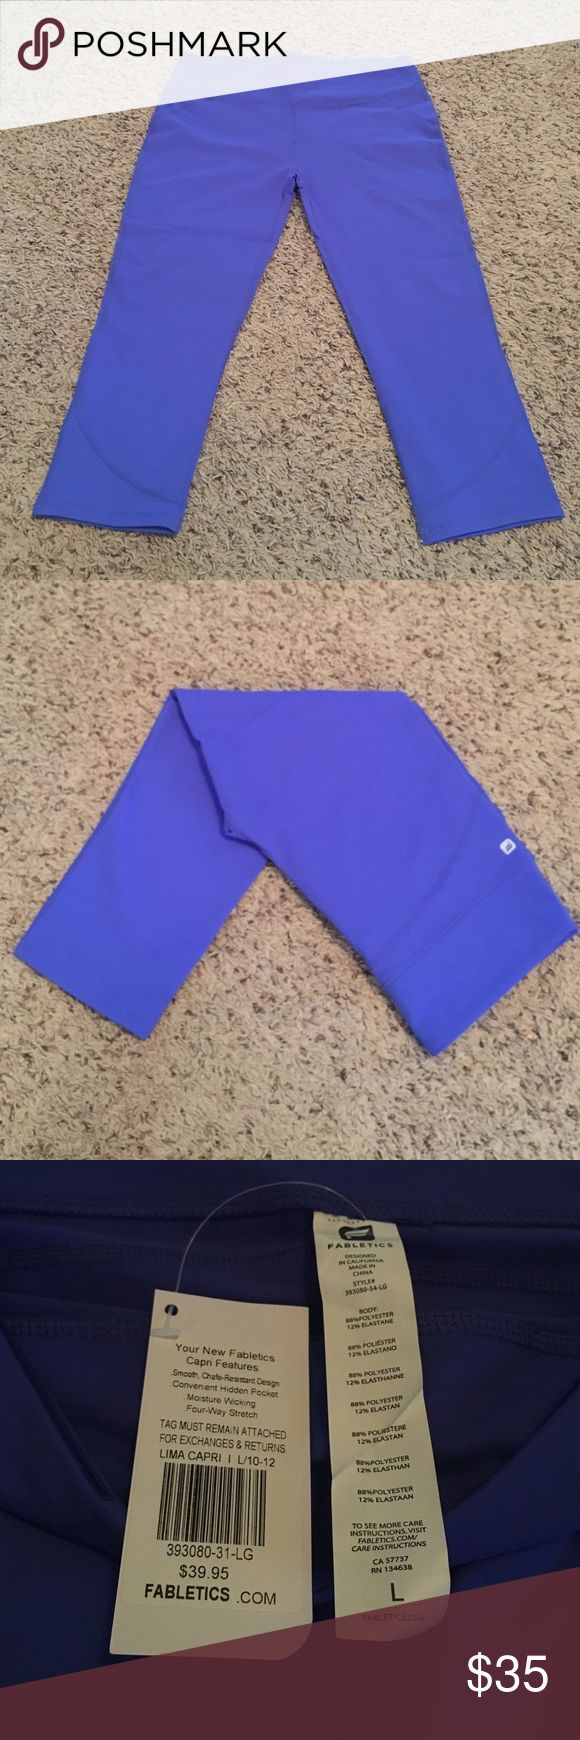 NWT Fabletics Lima Capris in Cobalt Blue Large Fabletics Lima Capri leggings in a beautiful blue color. Soft and comfortable, I accidentally bought 2 pair! Brand new with tags. Fabletics Pants Leggings